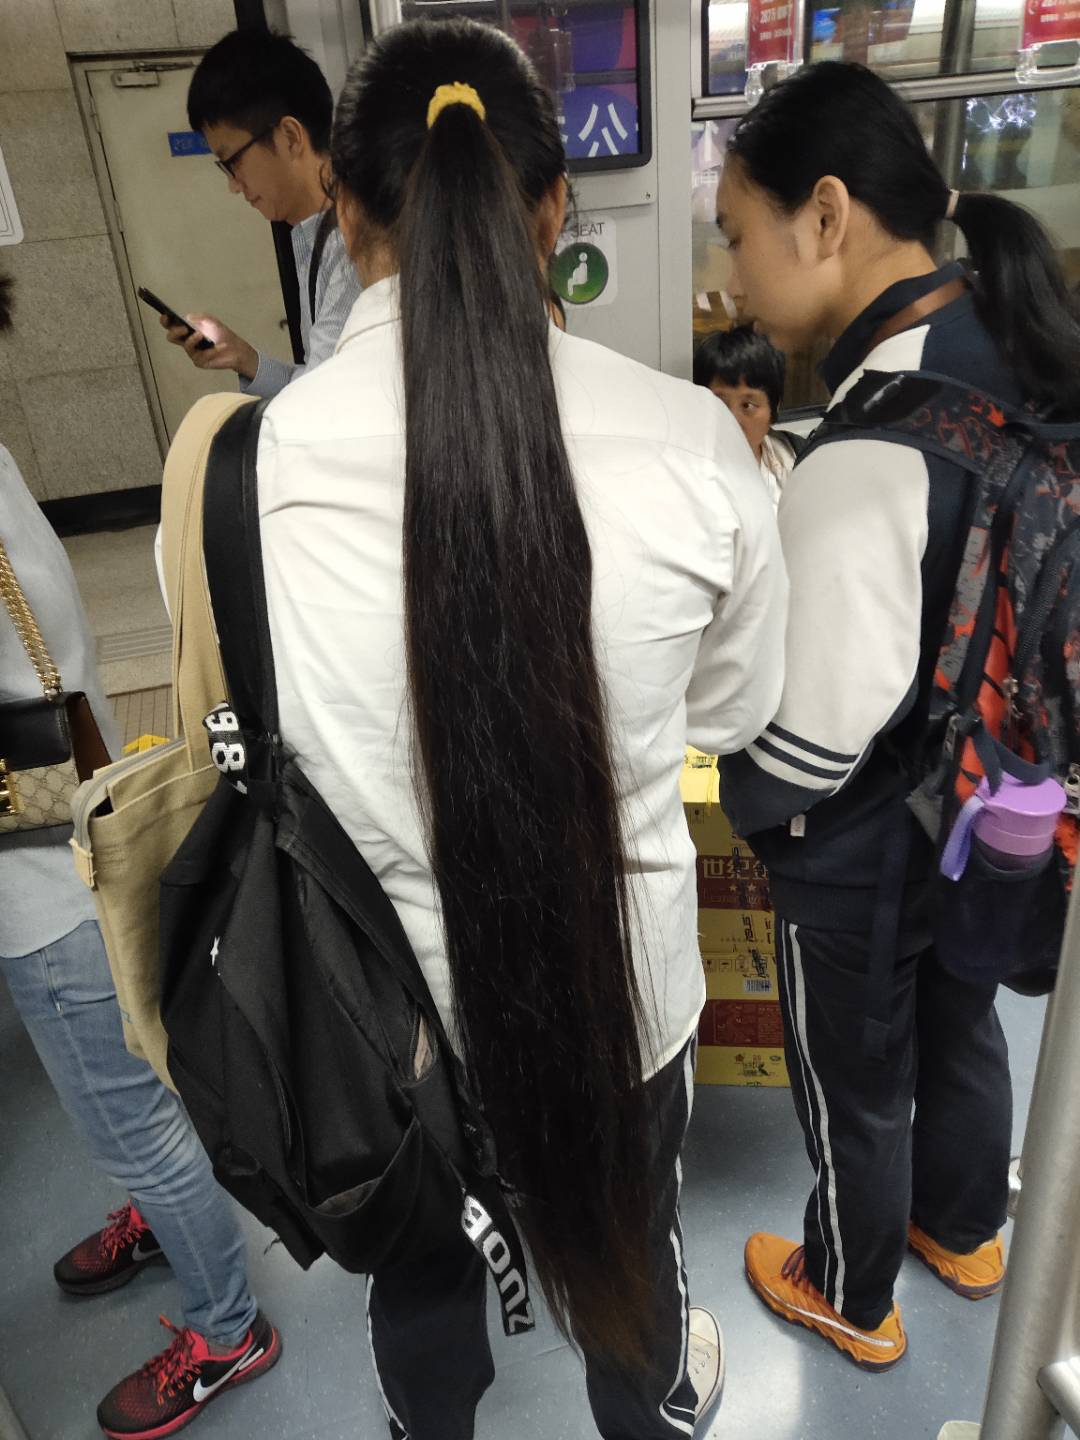 Streetshot of super long ponytail in subway